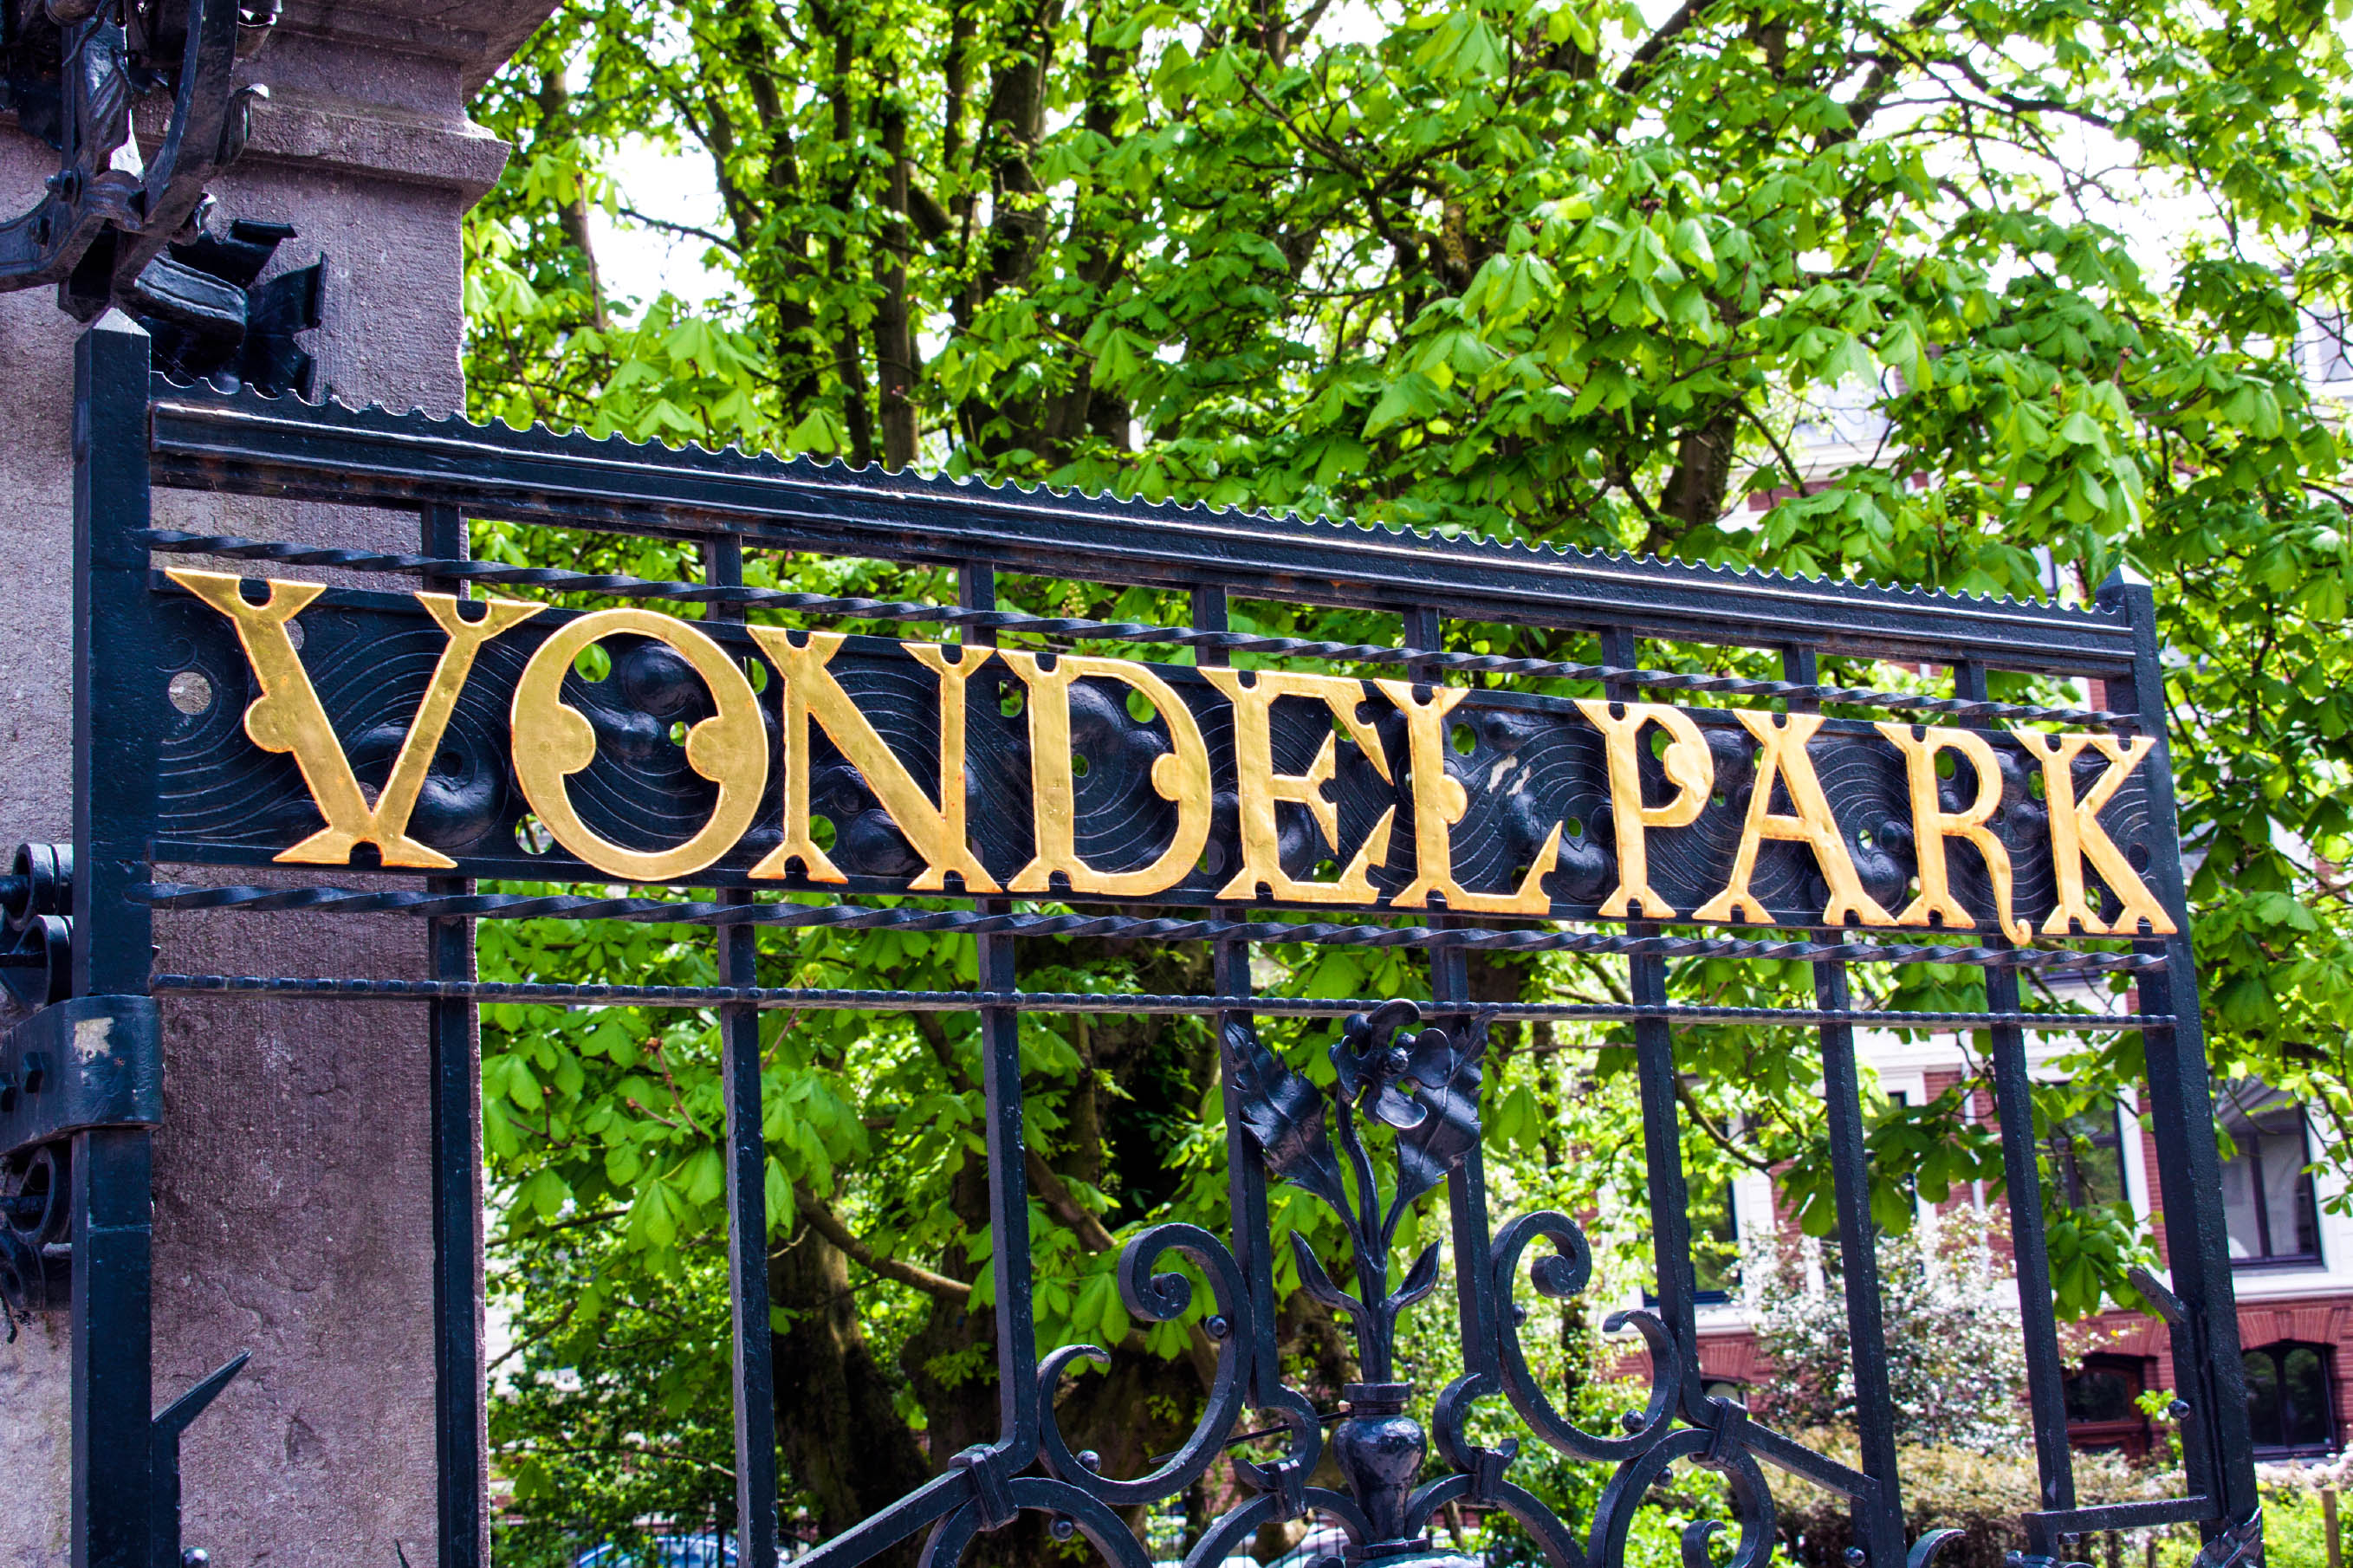 Amsterdam , netherlands-may 8, 2015: entrance of the Vondelpark in Amsterdam, letters on the fence